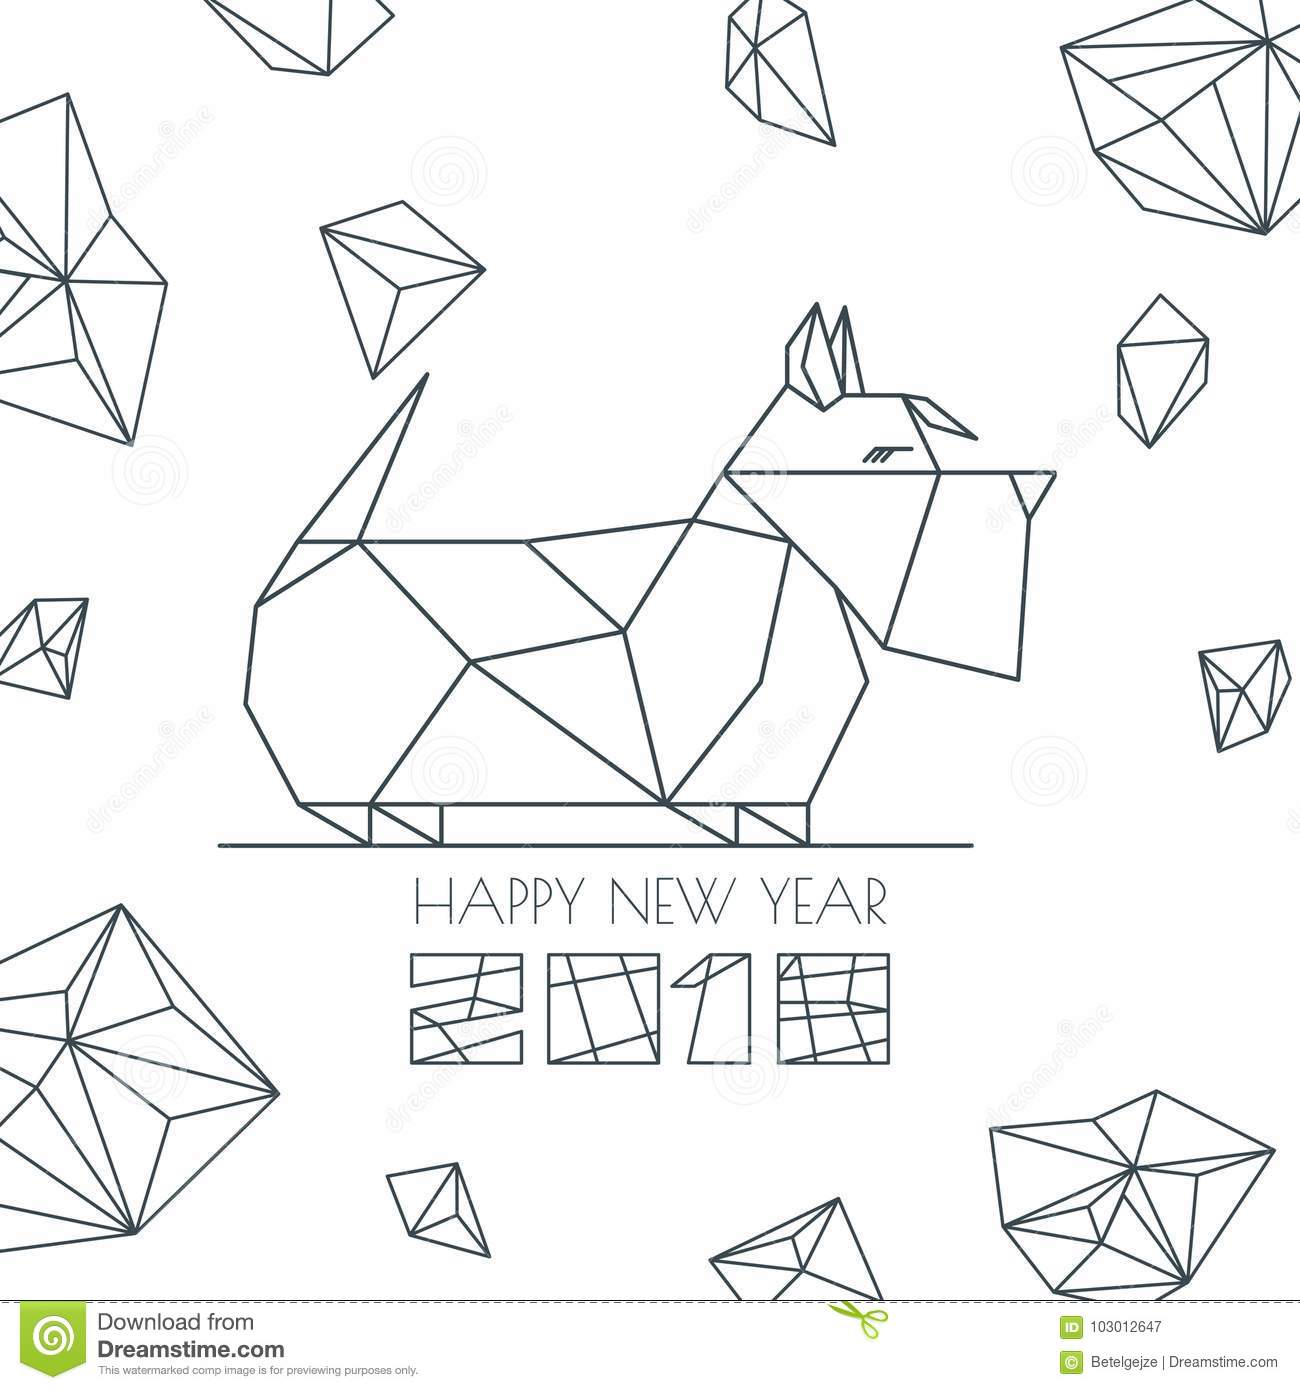 Happy new year 2018 vector greeting card poster banner stock happy new year 2018 vector greeting card poster banner with geometric outline dog modern symbol chinese calendar decoration monochrome scottish terrier m4hsunfo